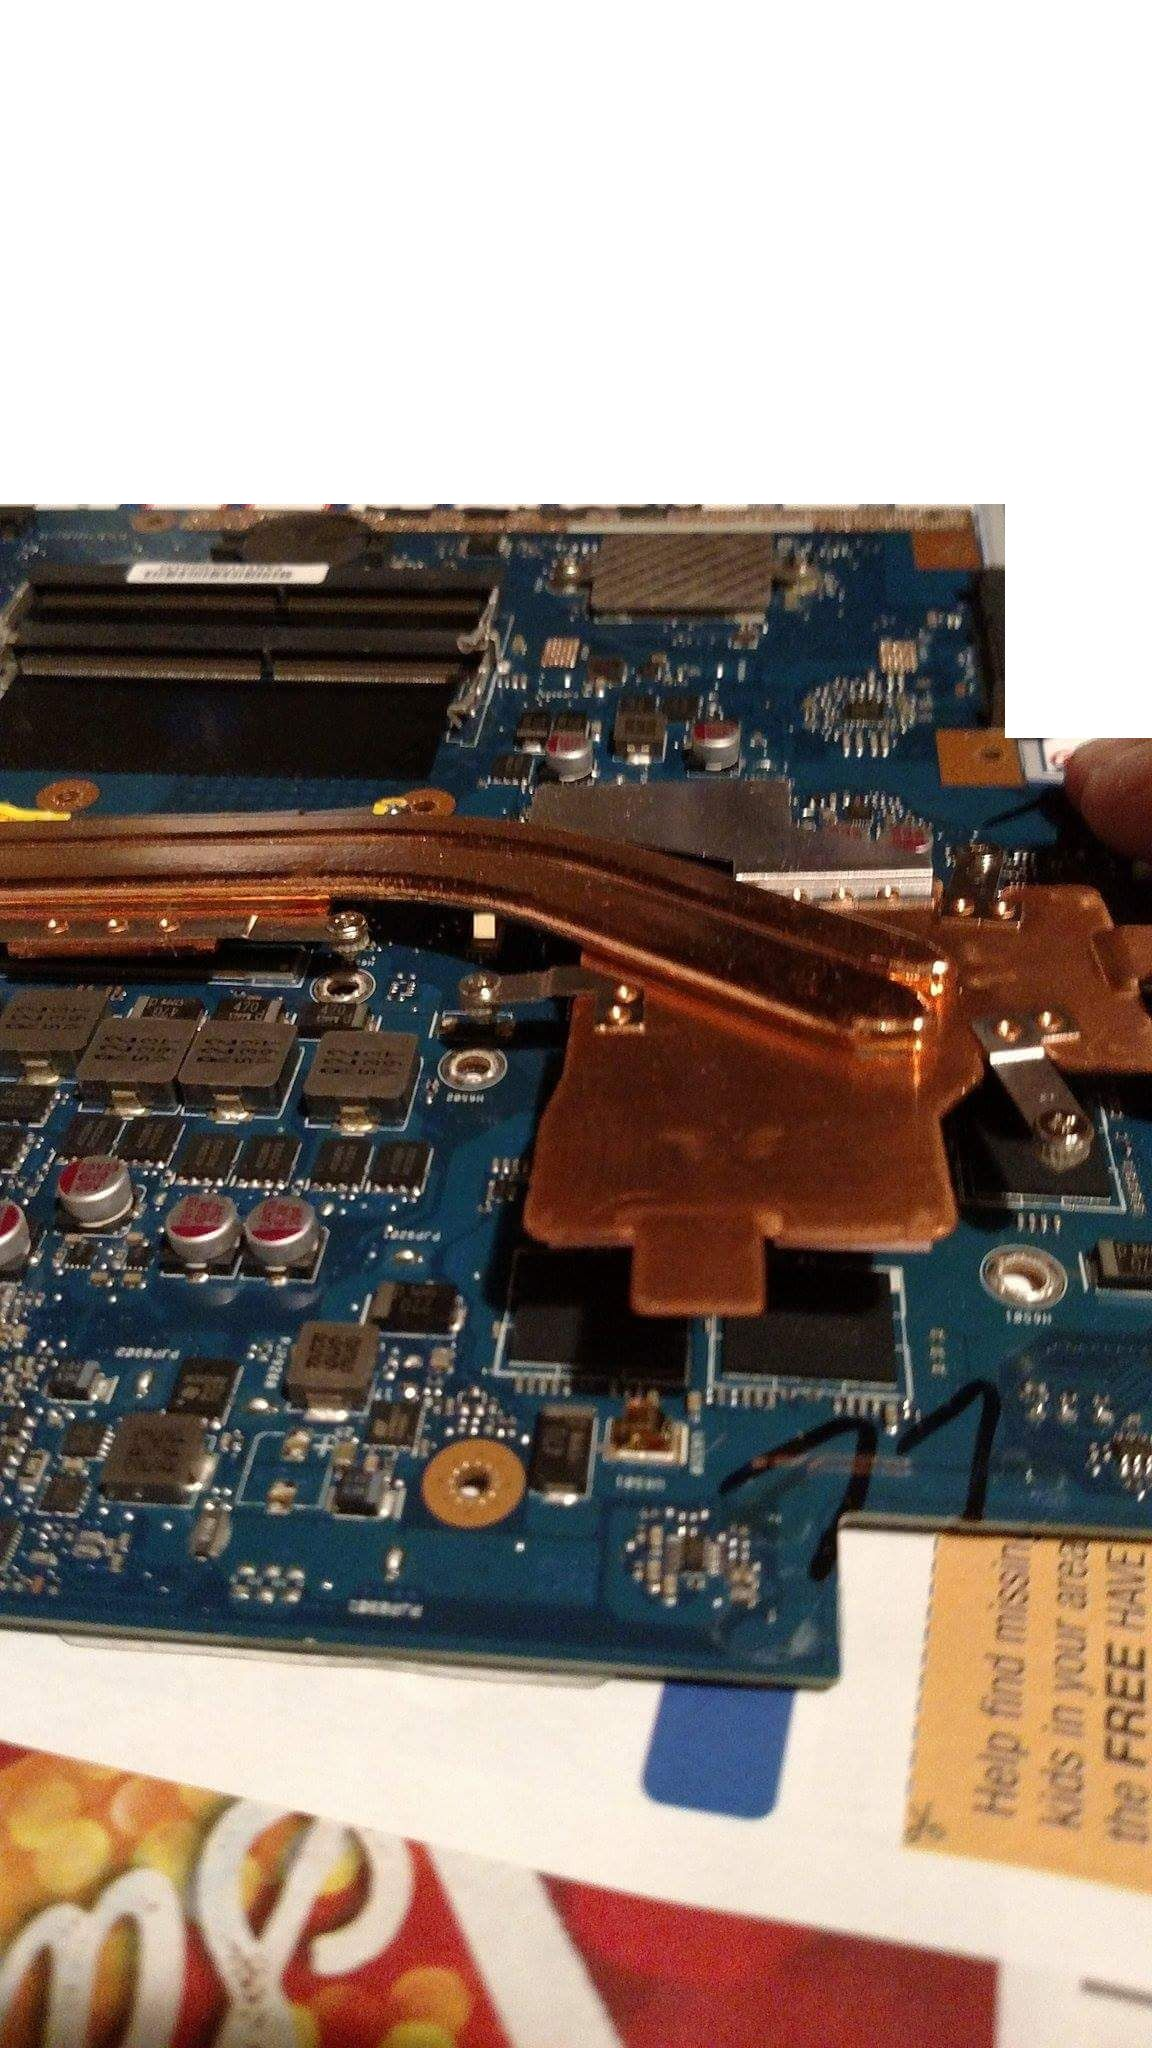 Asus G75 Randomly Cutting Power Laptop Tech Support Youmightbreakyourlaptop Warning If You Follow This And Break Your Get To Keep Both Pieces I Am Not Responsible